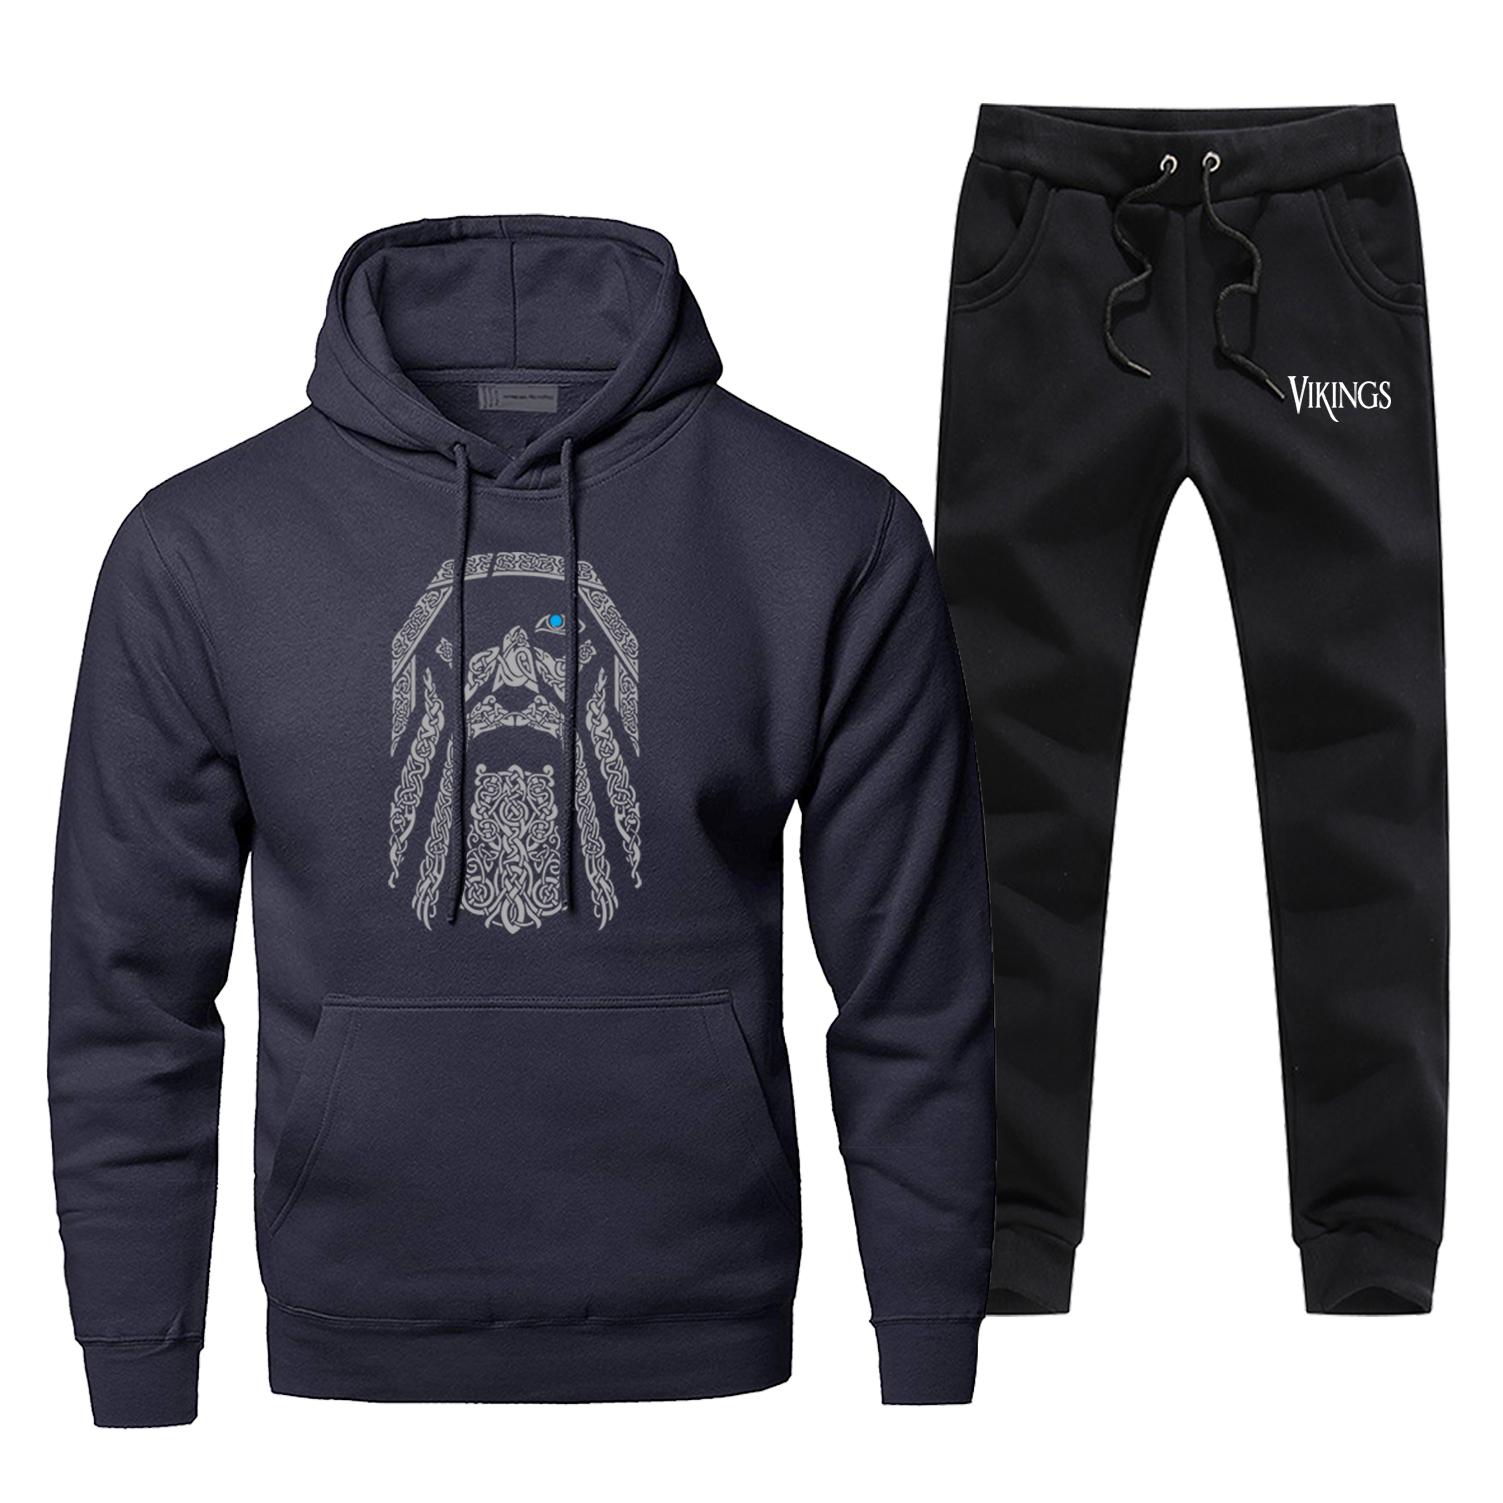 TV Show Odin Vikings Print Hoodeis Men Casual Cool Hoodie Sweatshirt Jacket+Pants Mens 2 Pieces Sets Winter Fleece Tracksuit